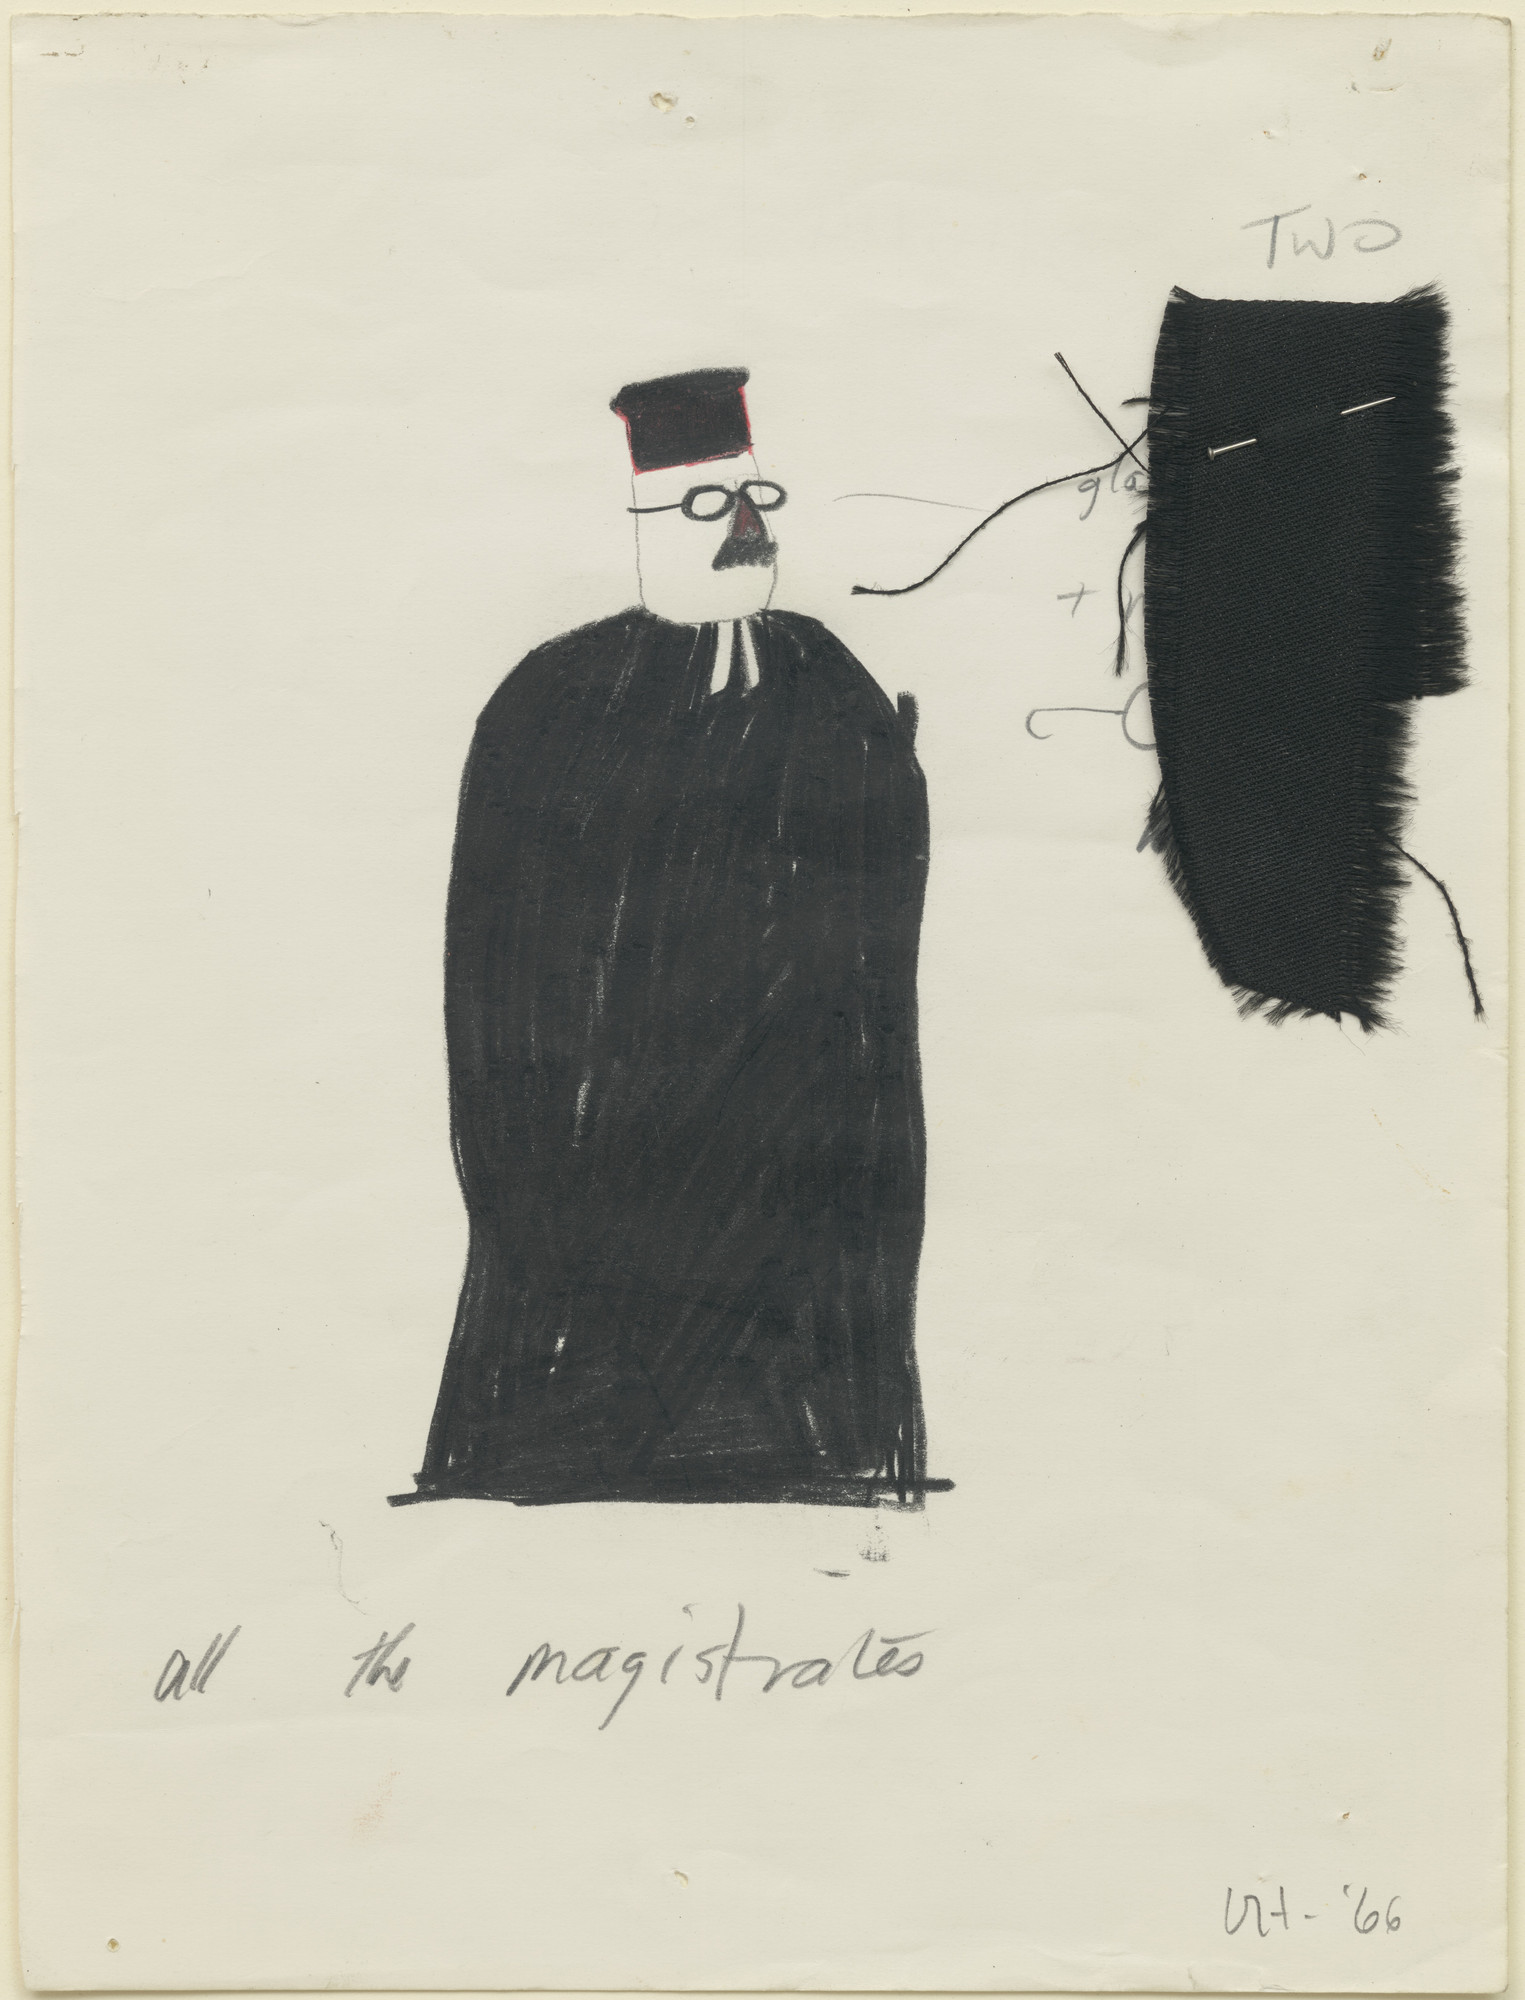 David Hockney. All the Magistrates. Costume design for the play Ubu Roi. 1966